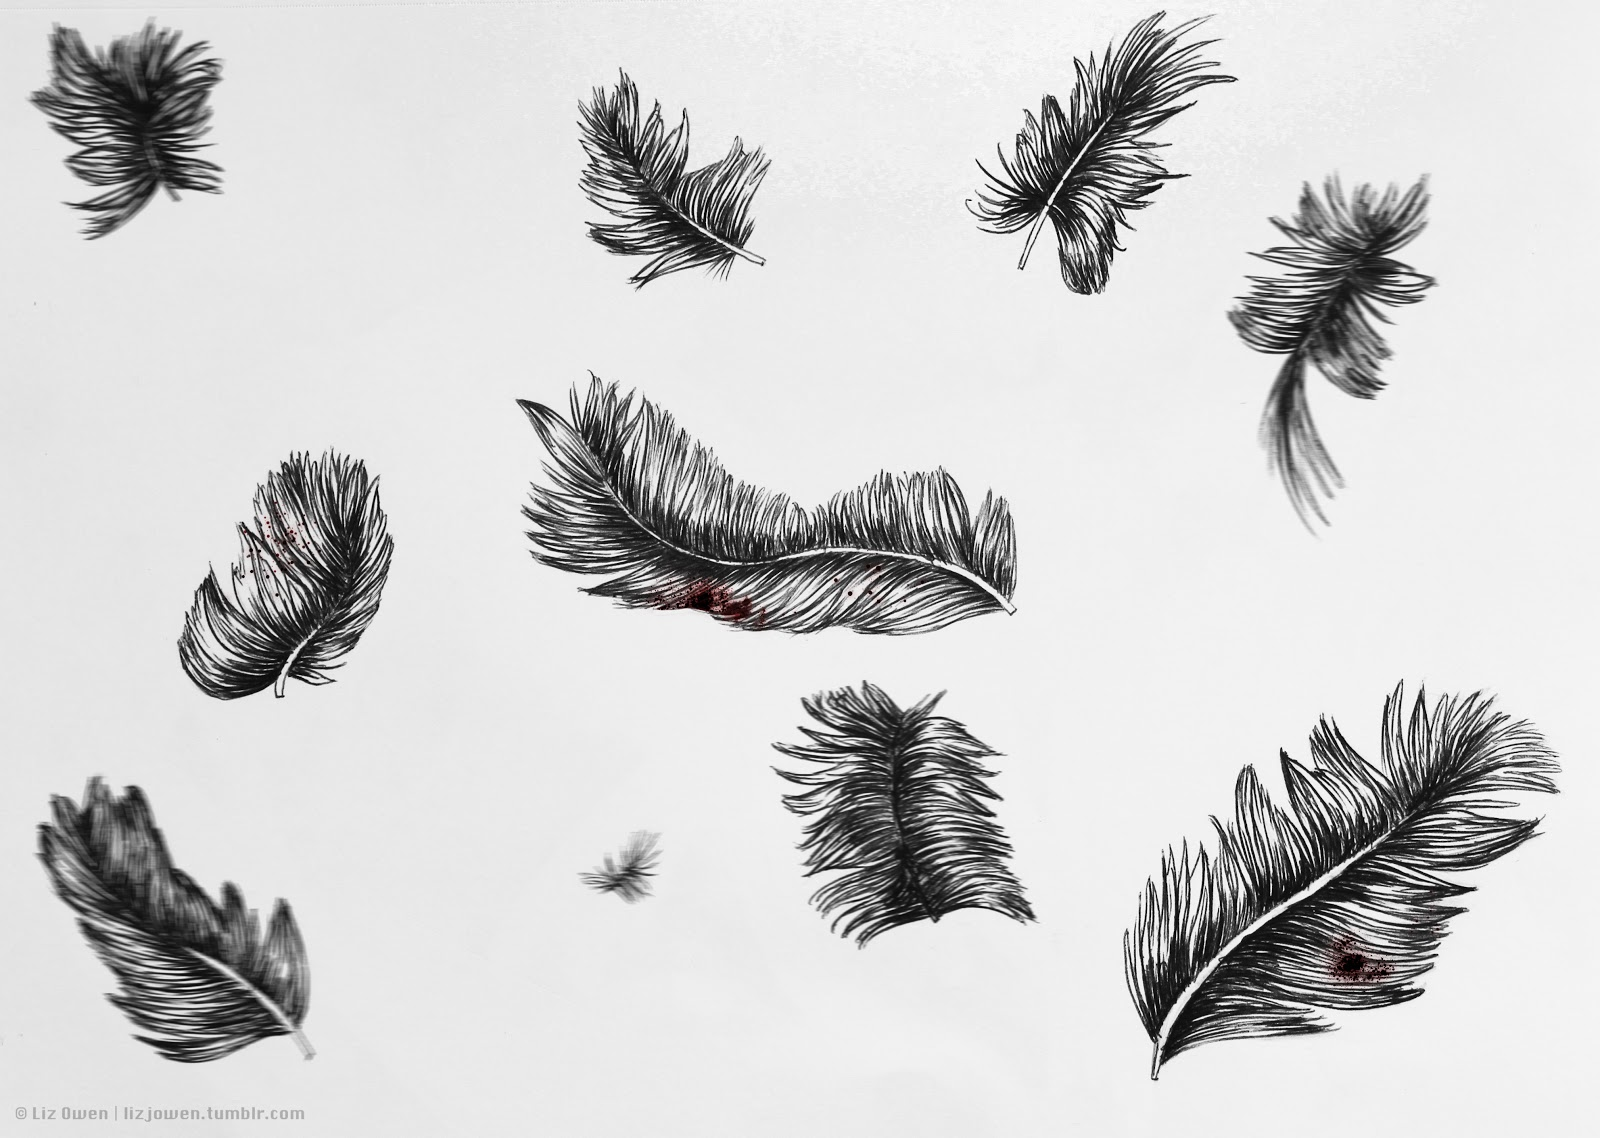 Liz Owen - Graphic Design and Illustration: Falling Feathers